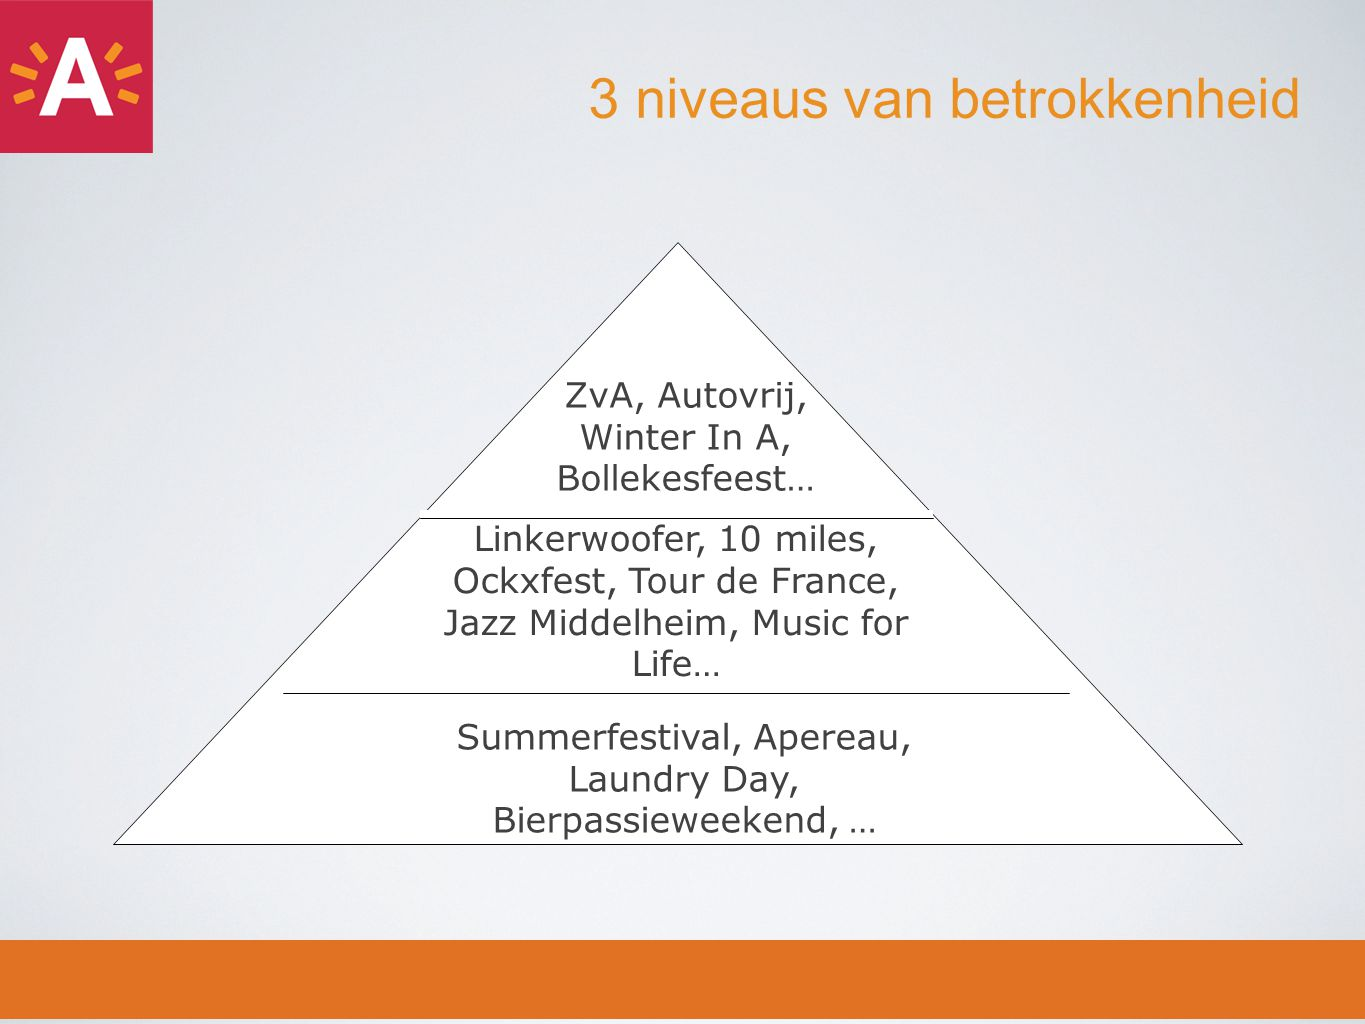 3 niveaus van betrokkenheid Linkerwoofer, 10 miles, Ockxfest, Tour de France, Jazz Middelheim, Music for Life… Summerfestival, Apereau, Laundry Day, Bierpassieweekend, … ZvA, Autovrij, Winter In A, Bollekesfeest…